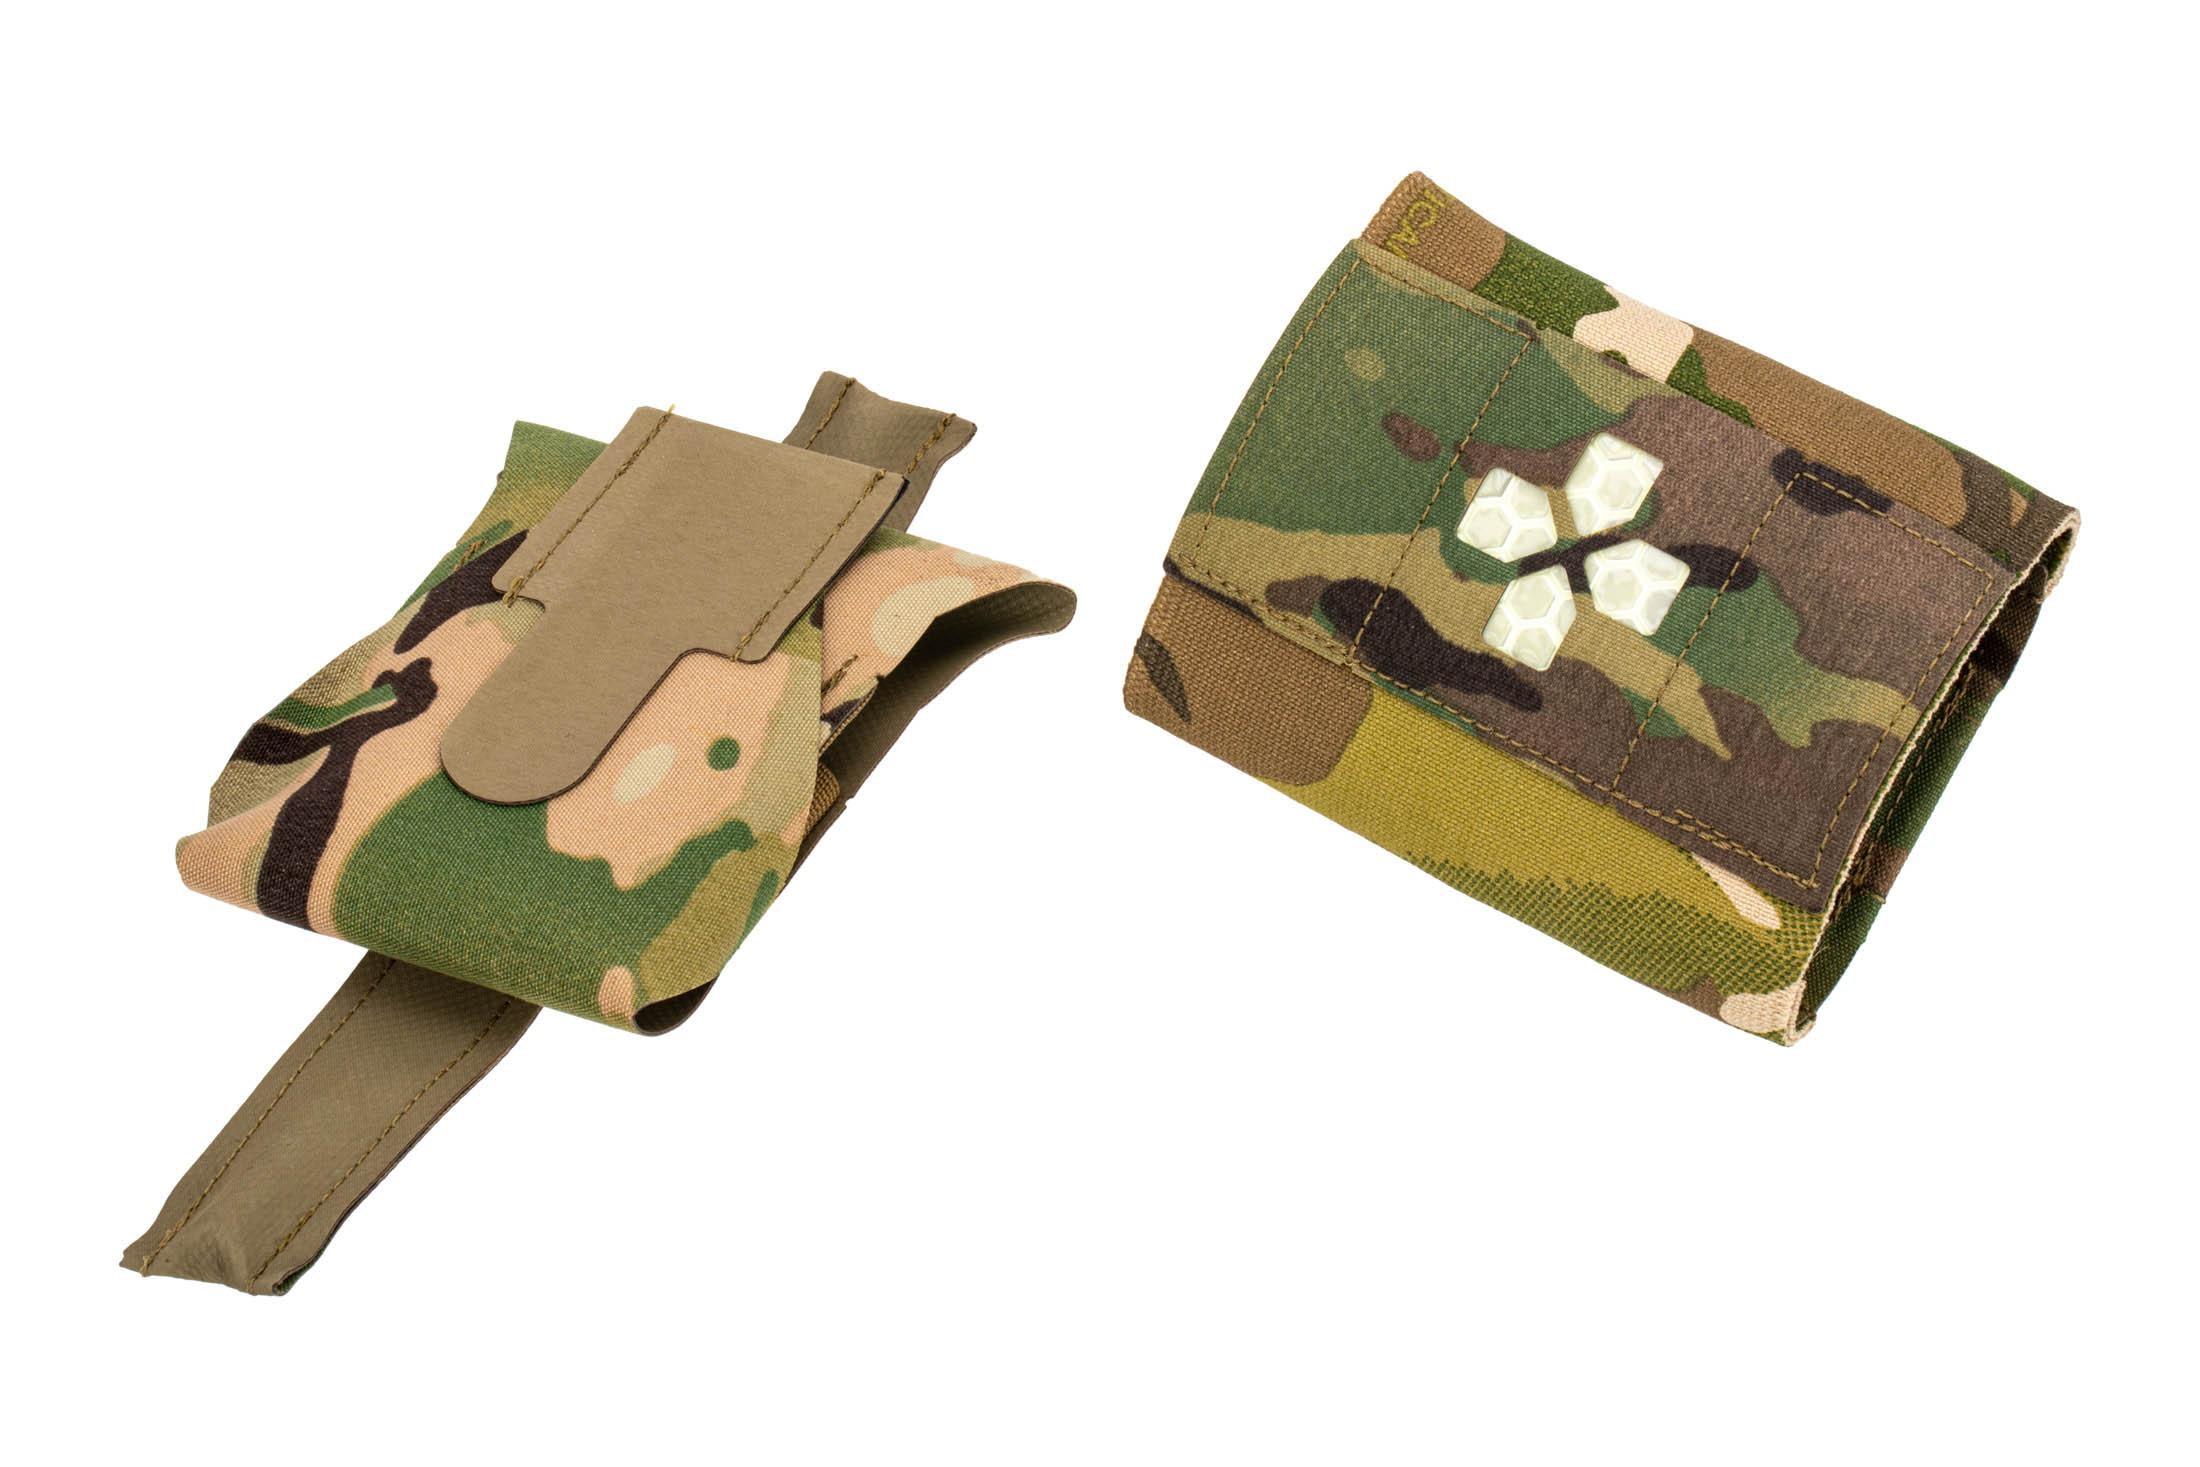 The Blue Force Gear Micro Trauma Kit Now separates into two pouches